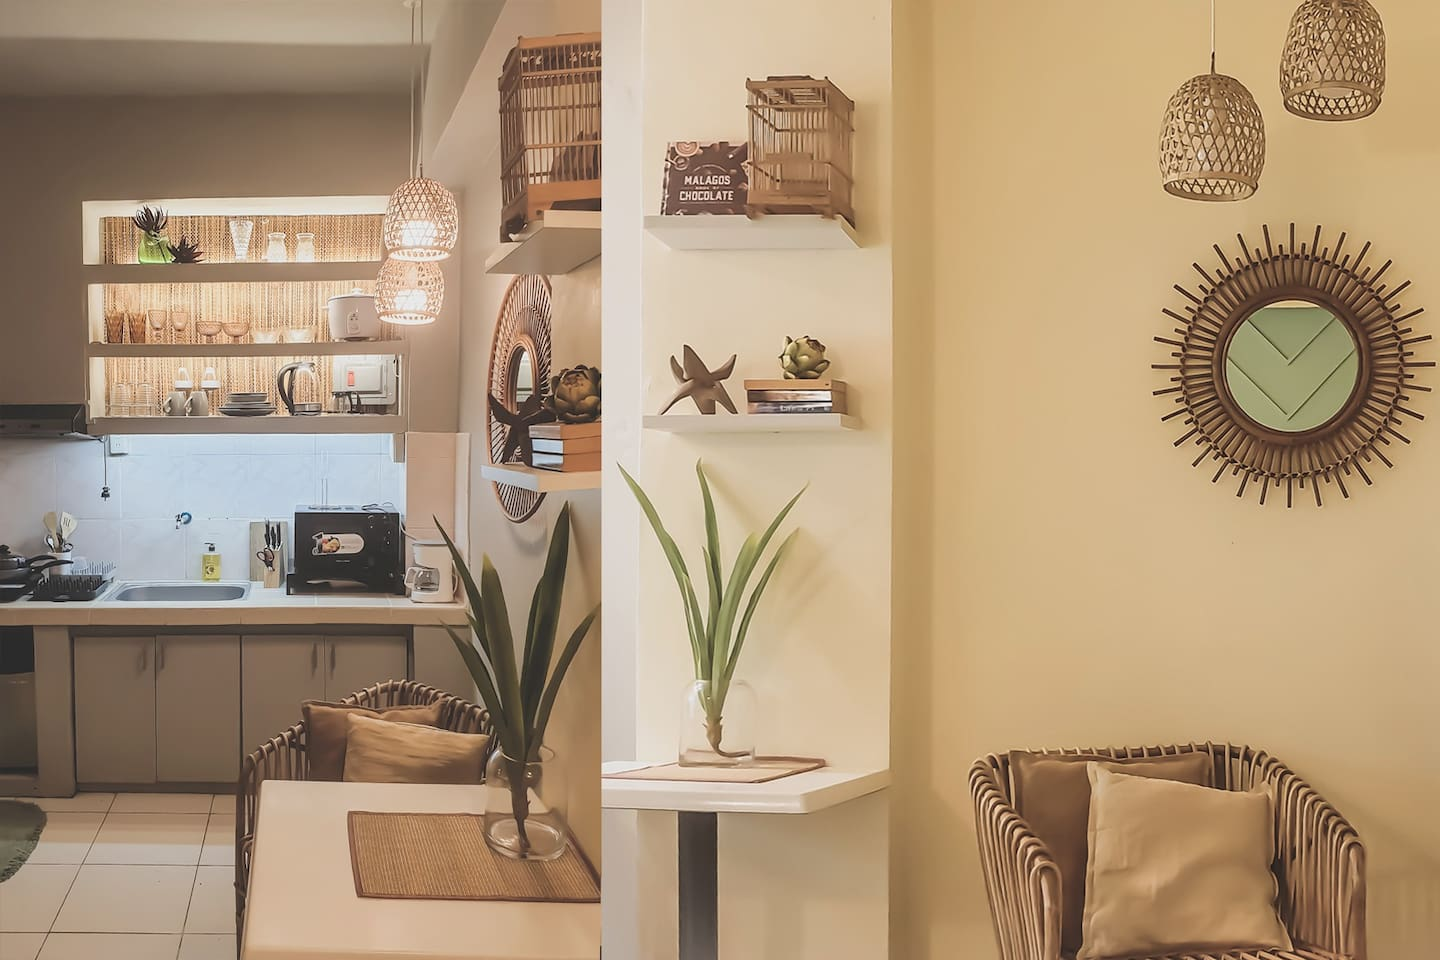 Island-inspired interiors for a relaxing stay, right in the heard of Metro Manila.